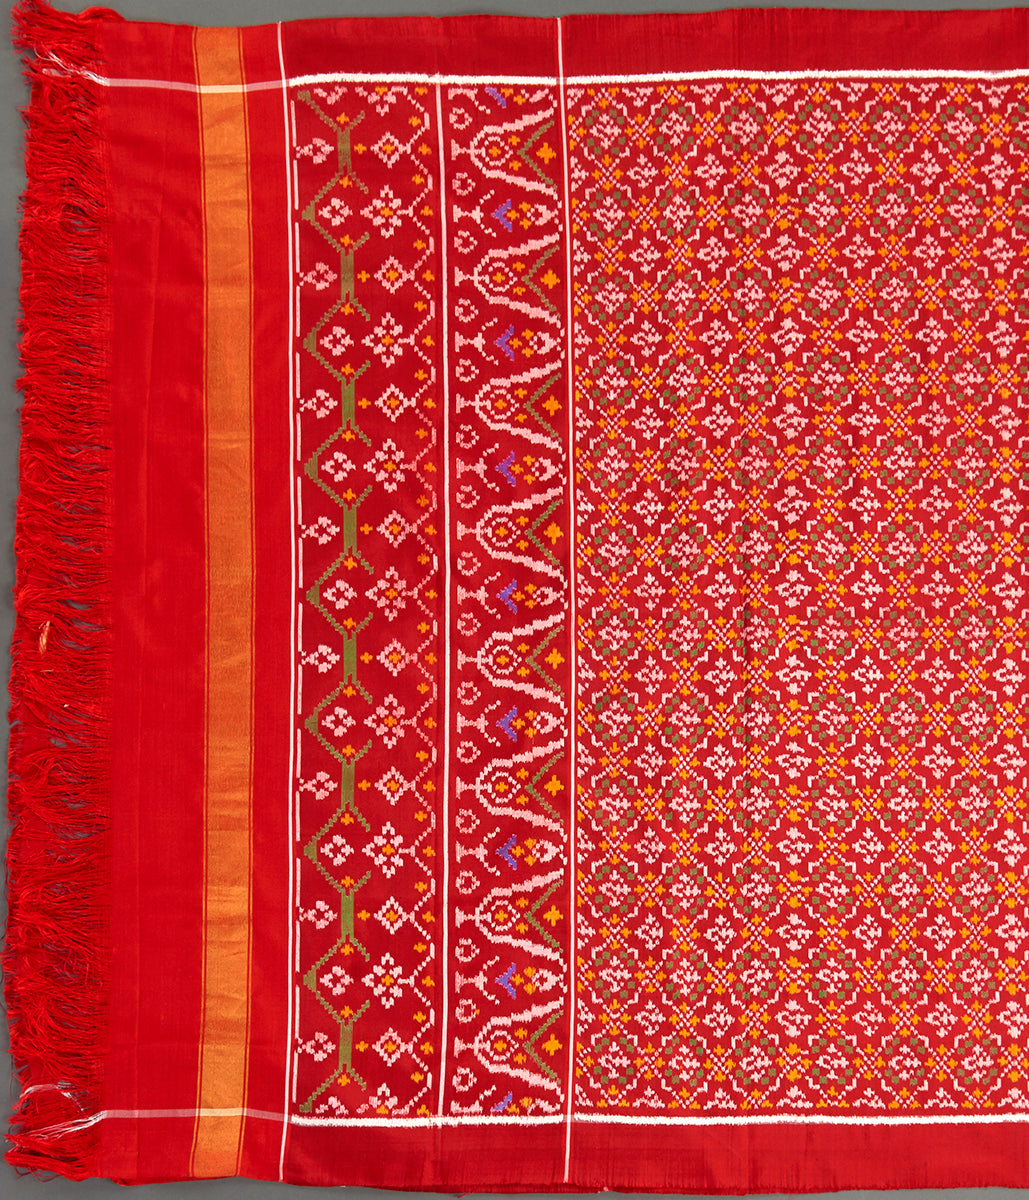 Handwoven Ikat Patola Dupatta in Red